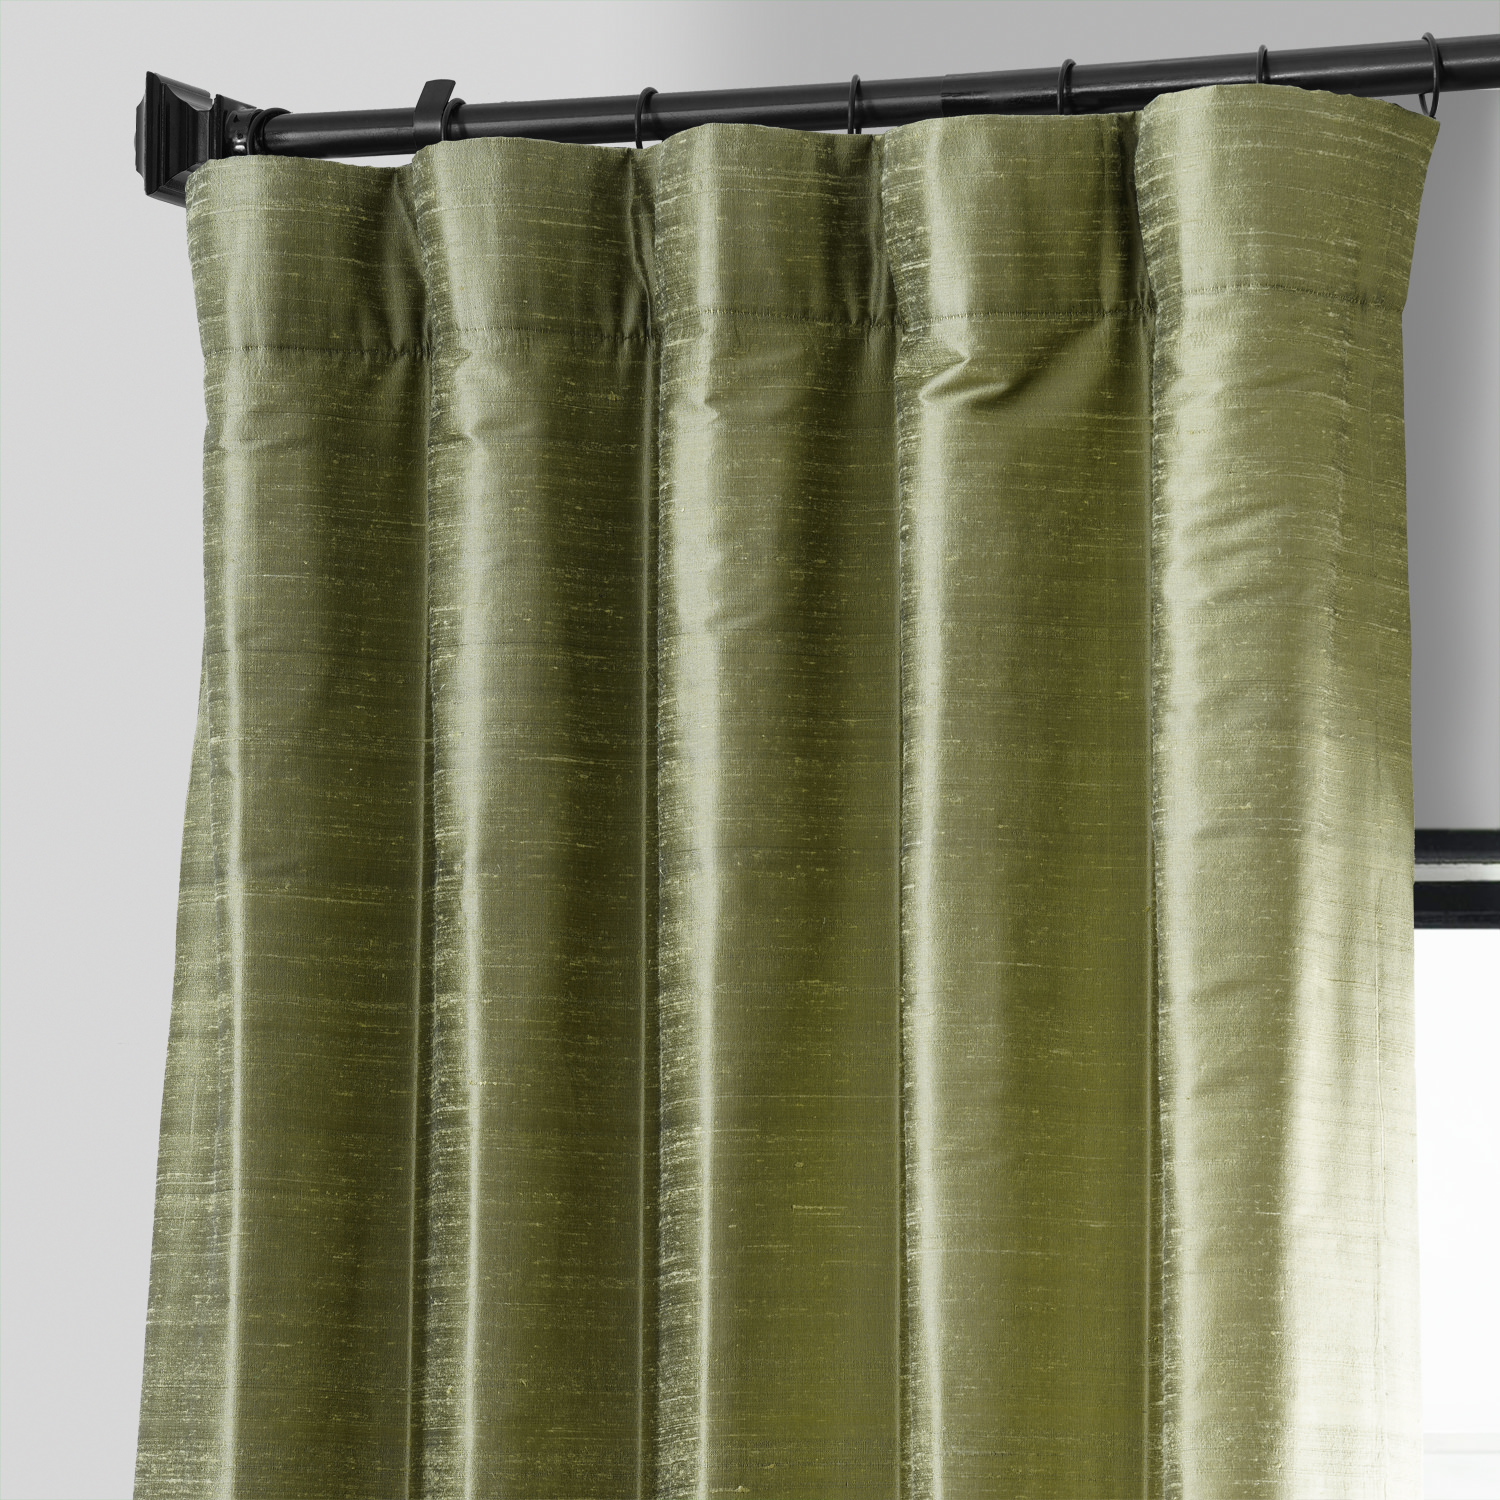 Paradise Green Textured Dupioni Silk Curtain